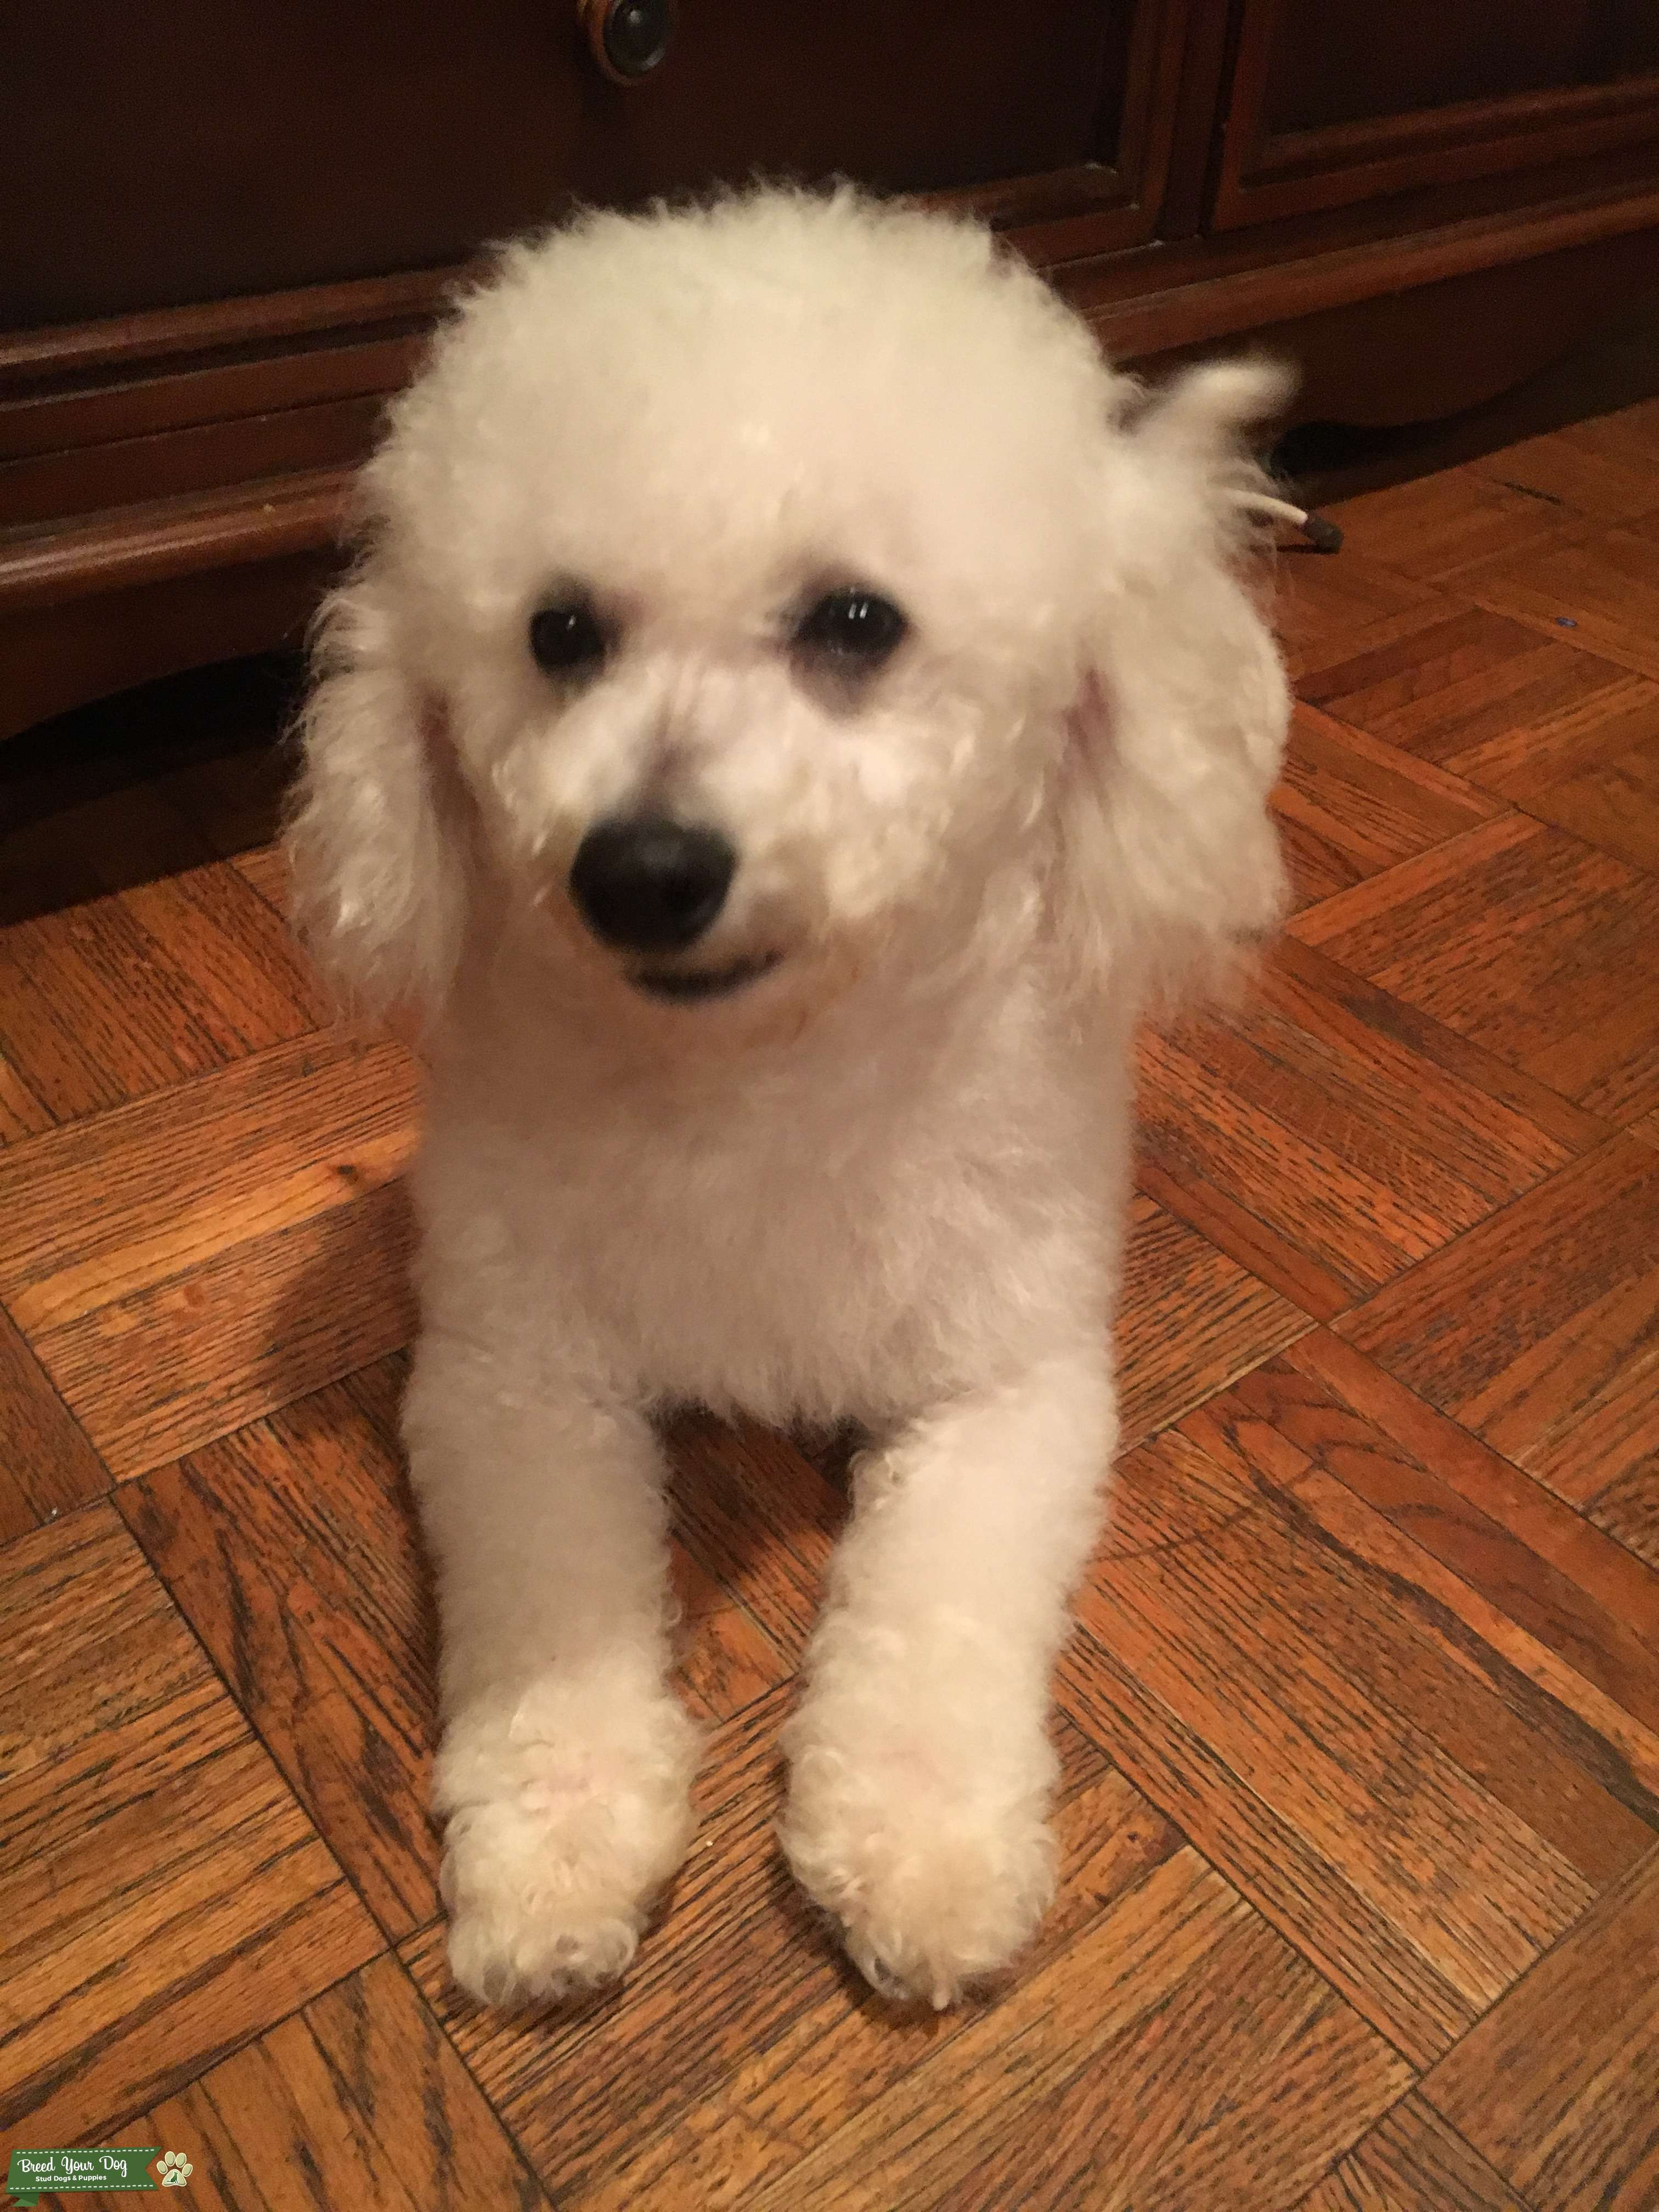 Bichon Frise Male Dog Listing Image Big